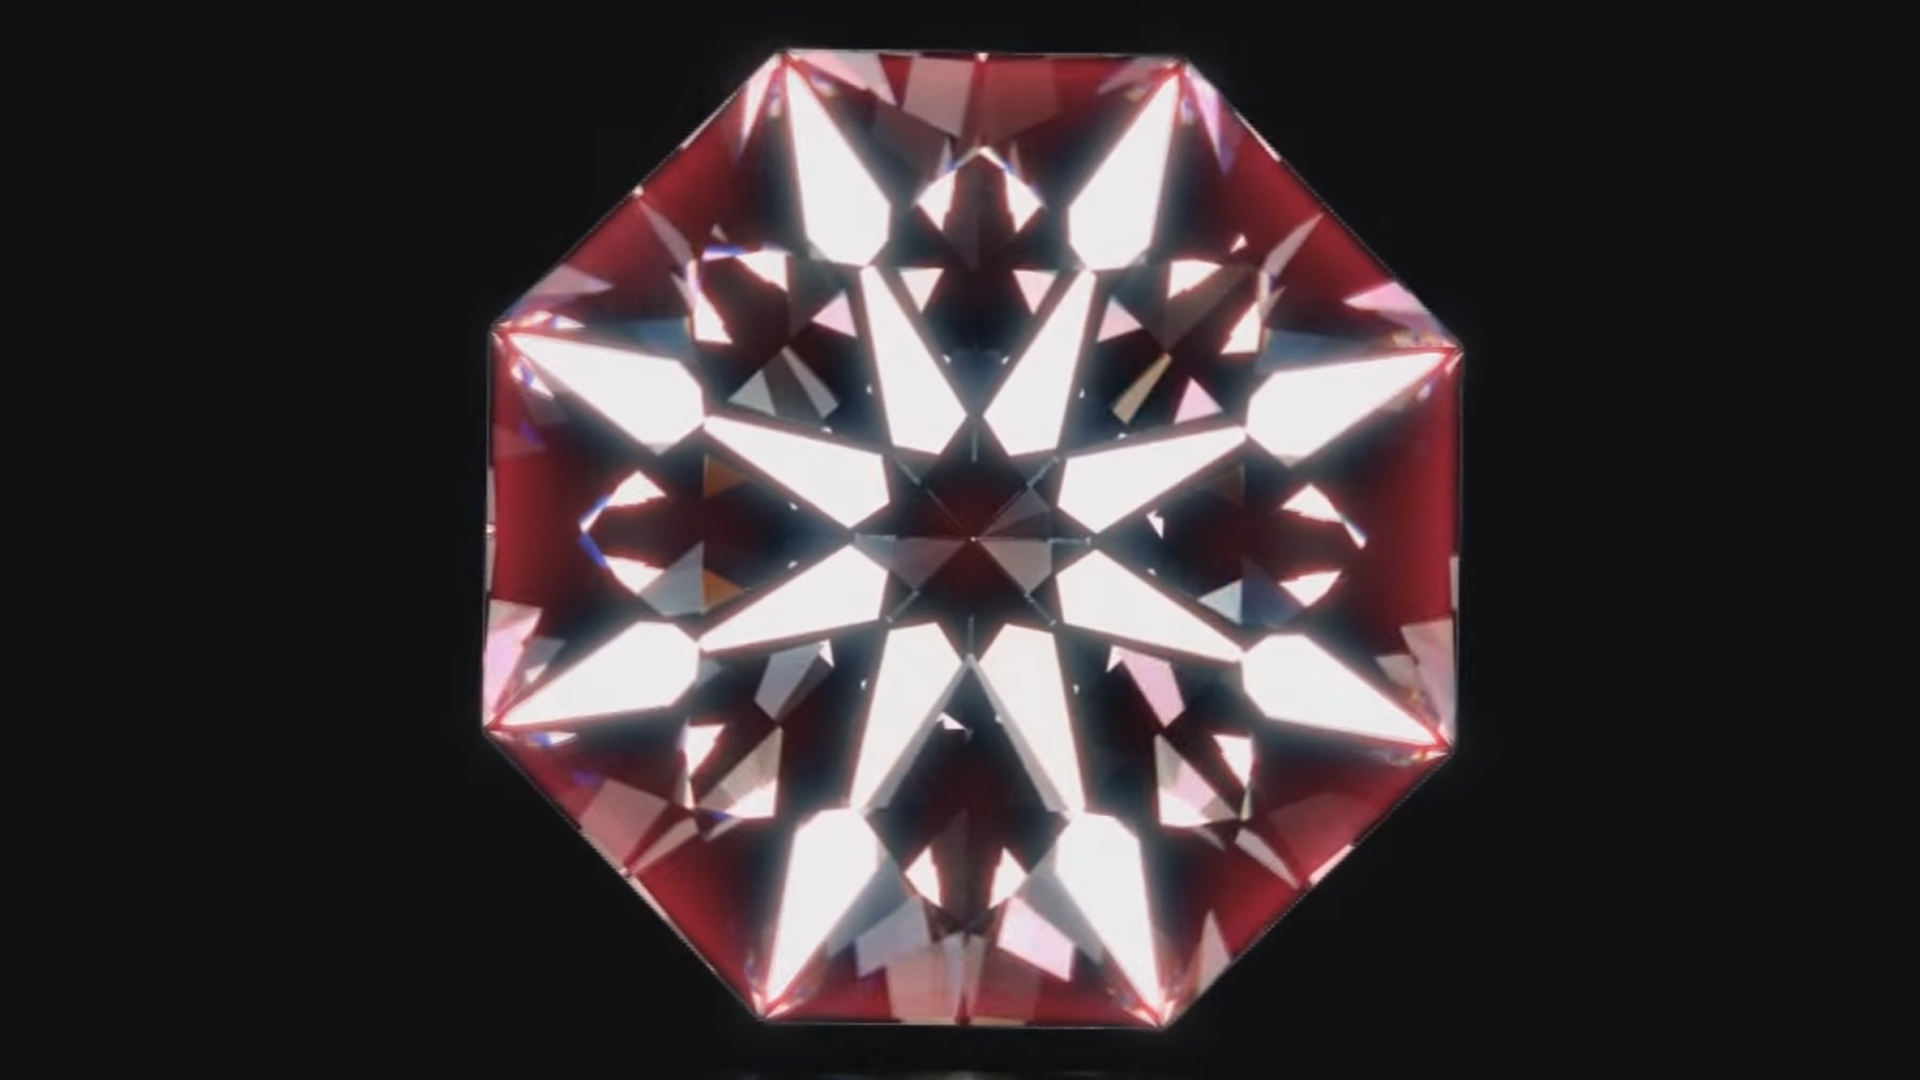 JannPaul: The World's First Octagon Hearts & Arrows Diamond